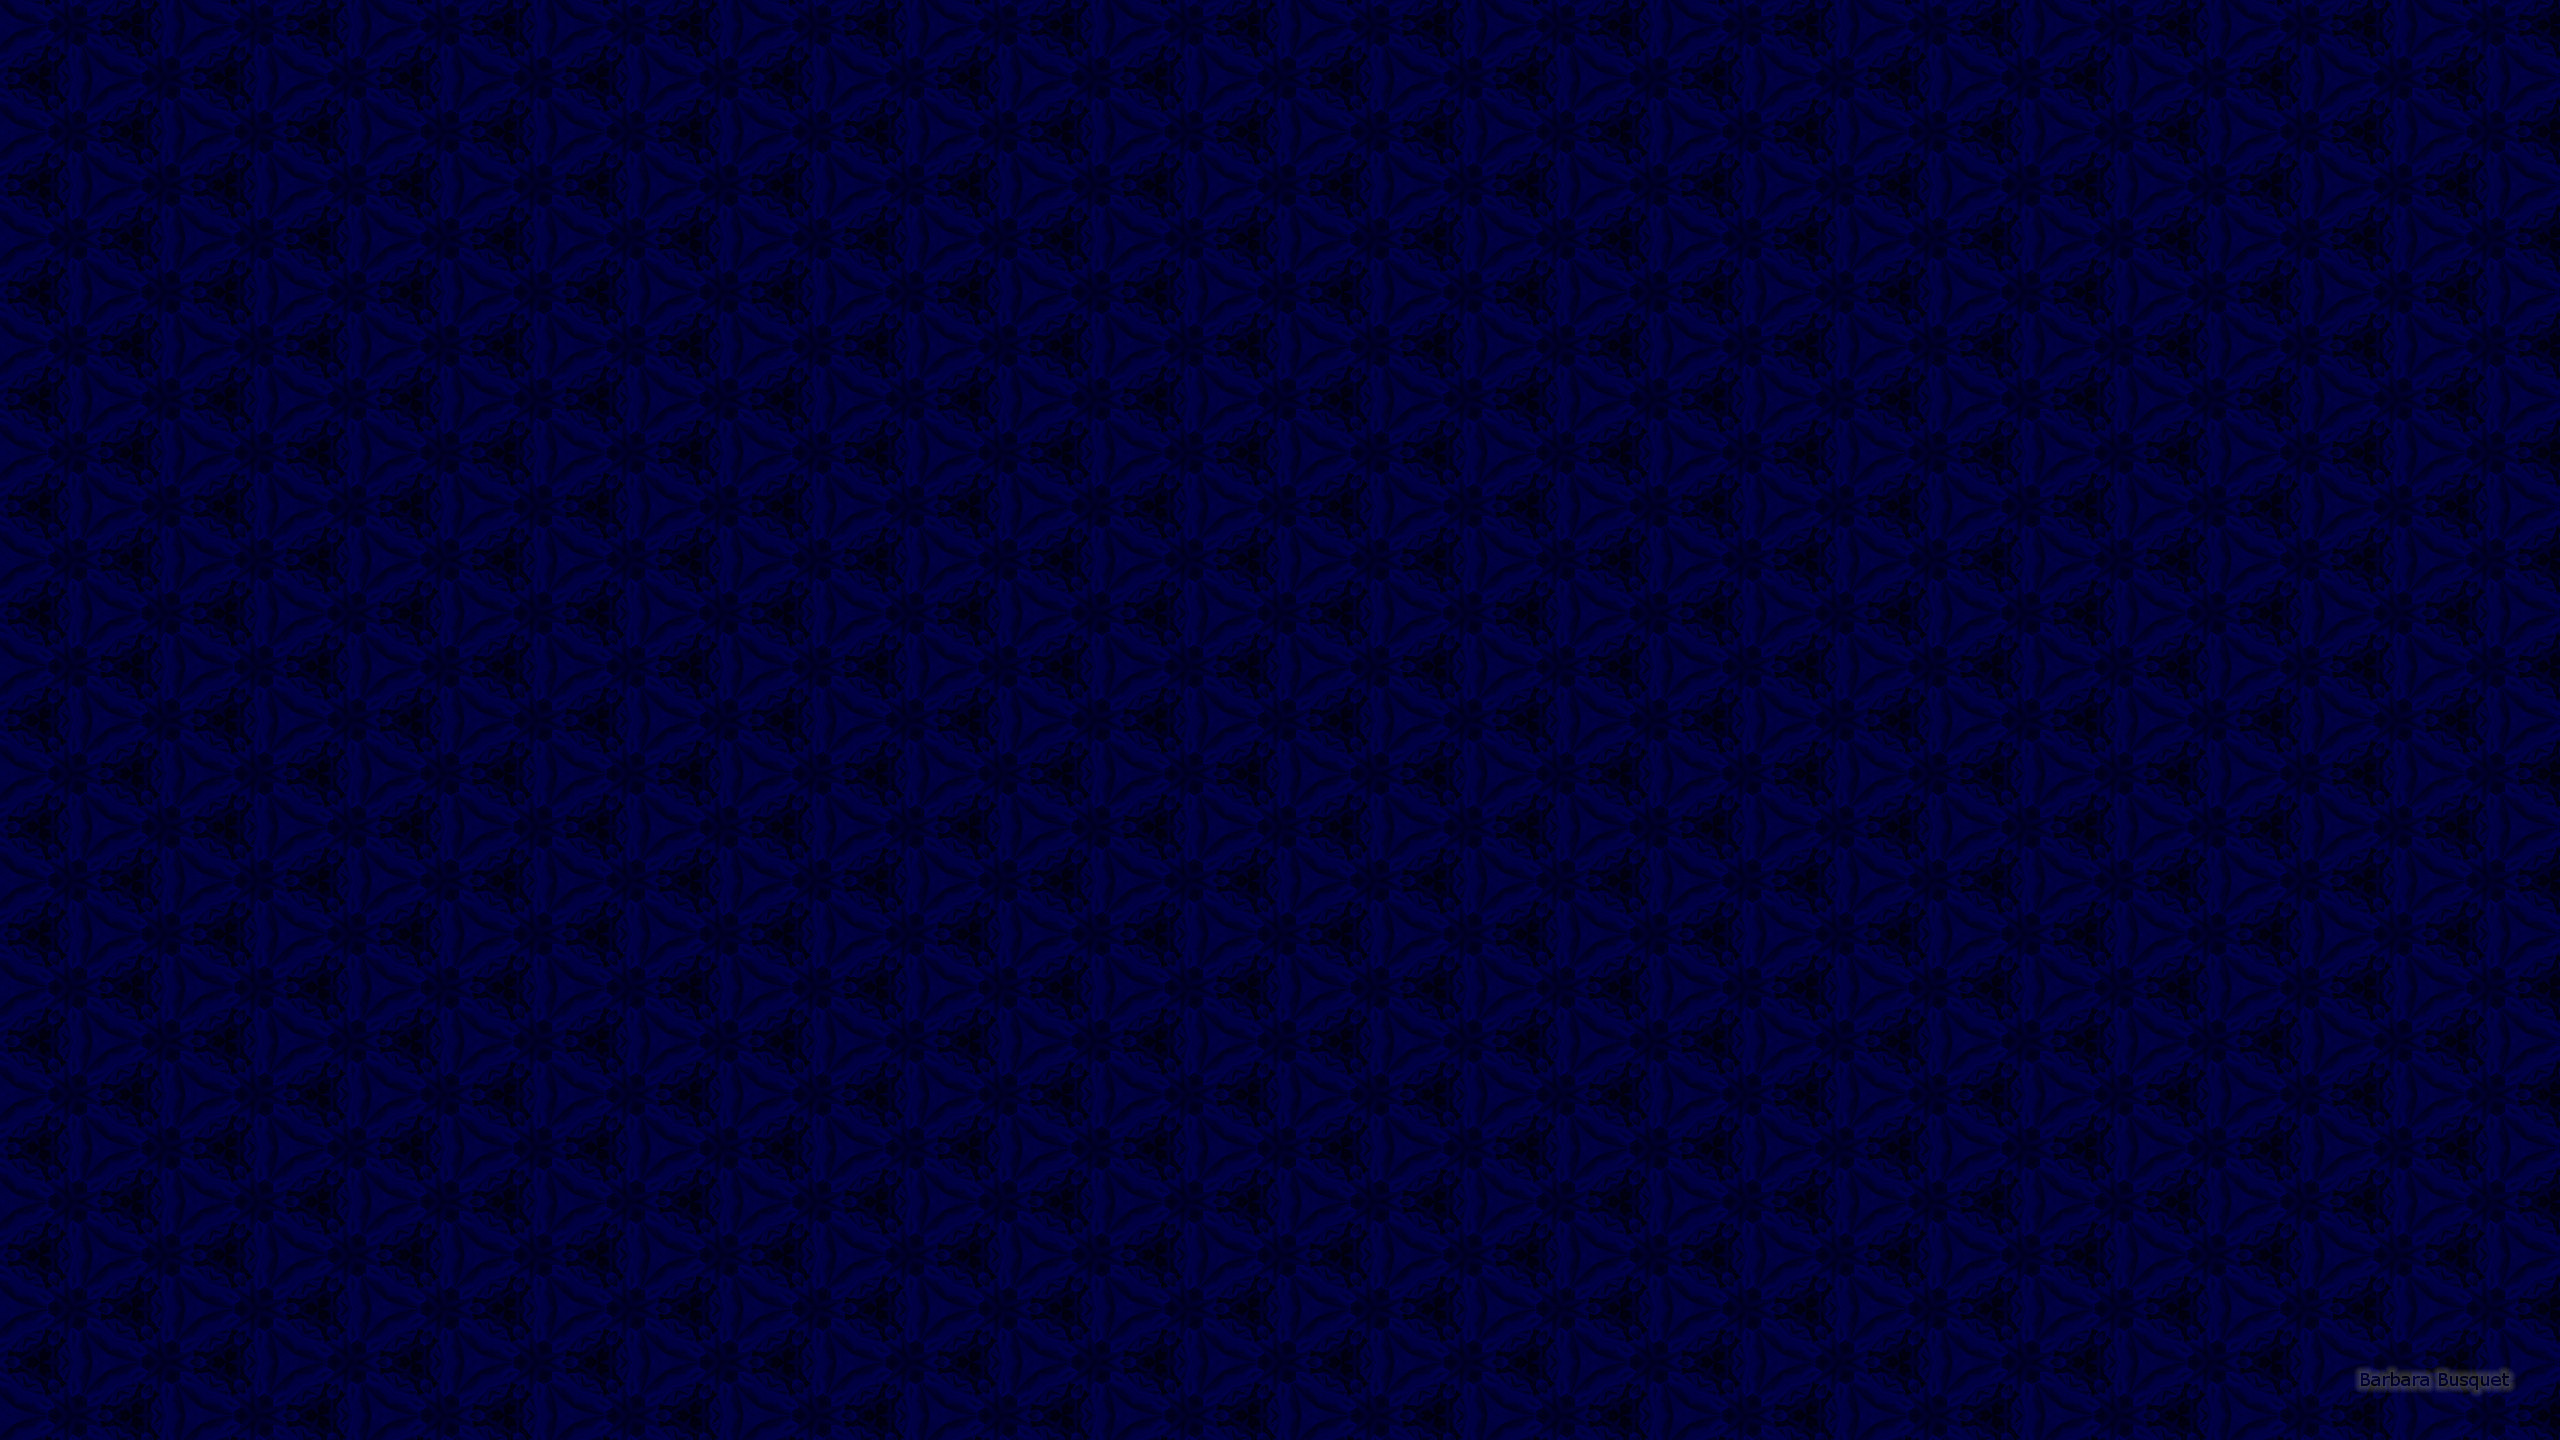 Dark blue triangle wallpaper with lors of the night #9036